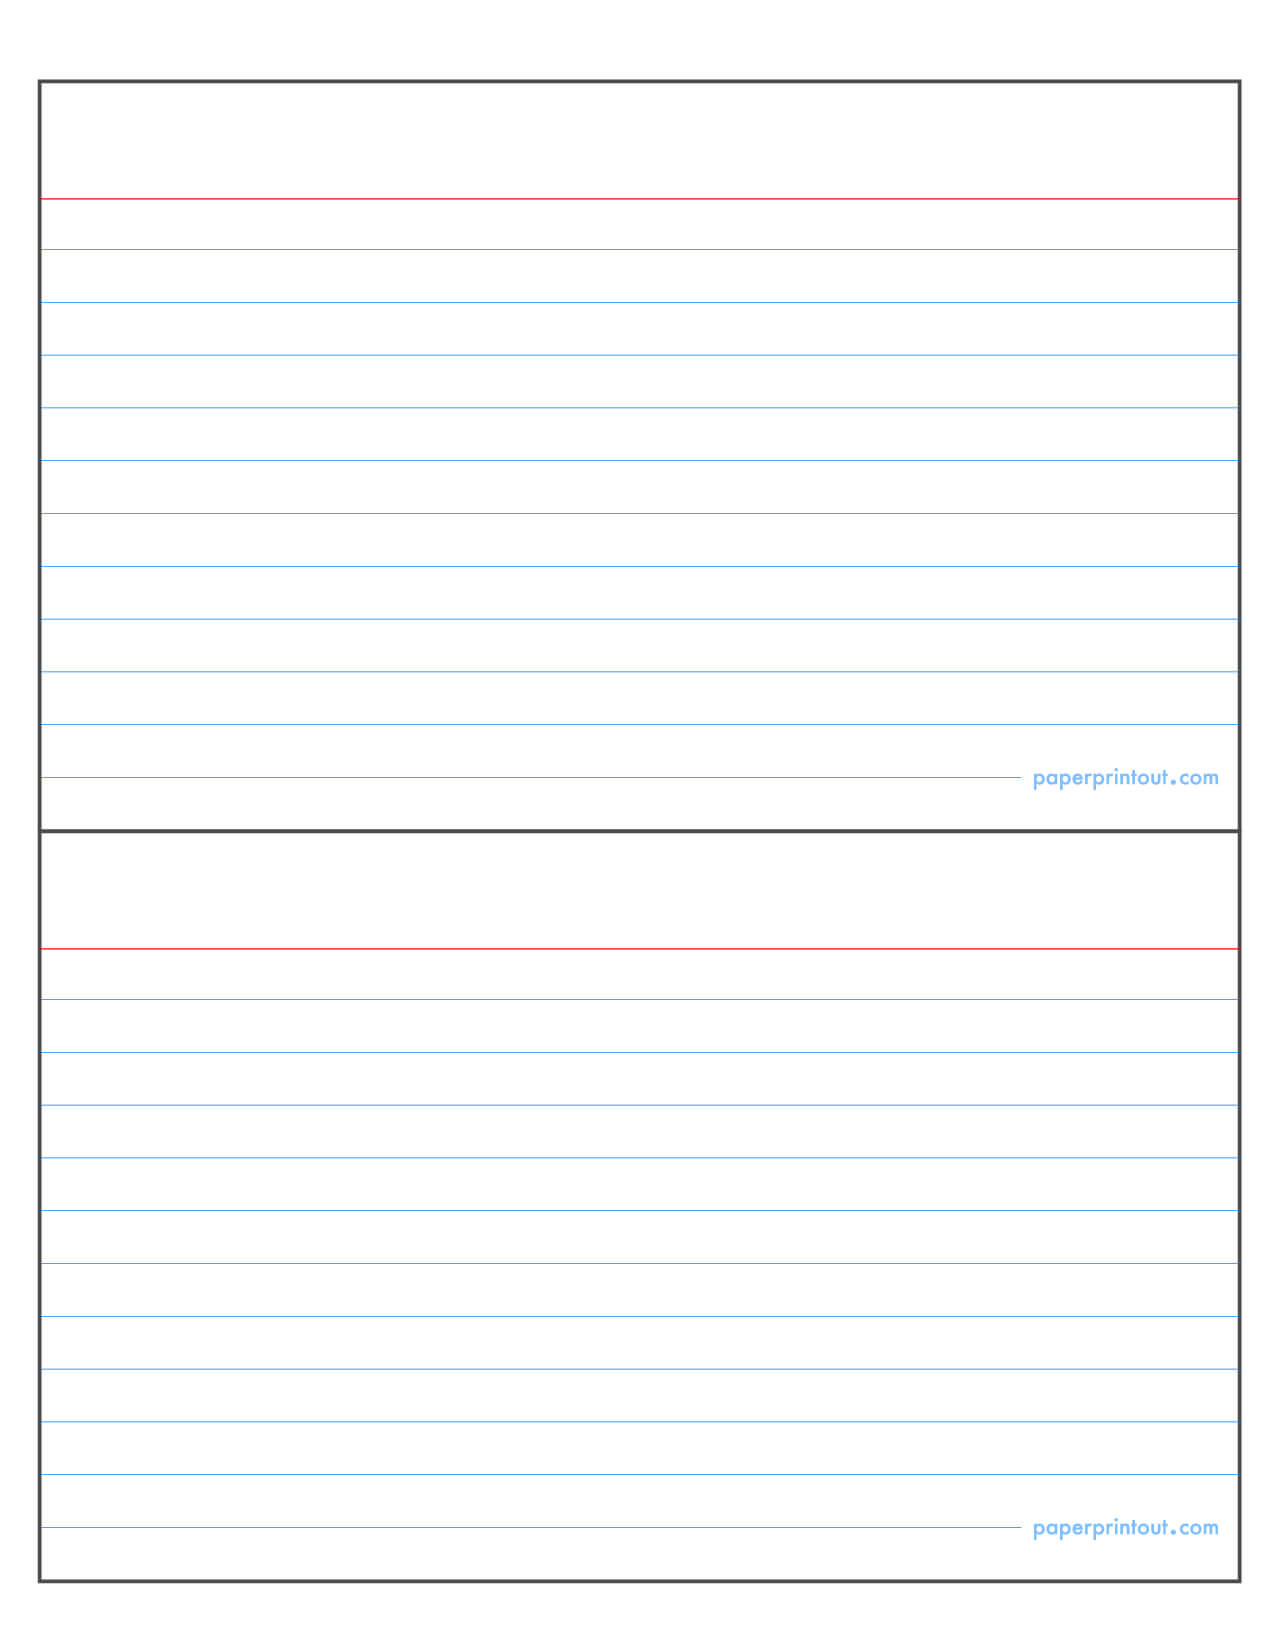 3X5 Card Template Microsoft Word - Colona.rsd7 Within 3X5 Blank Index Card Template